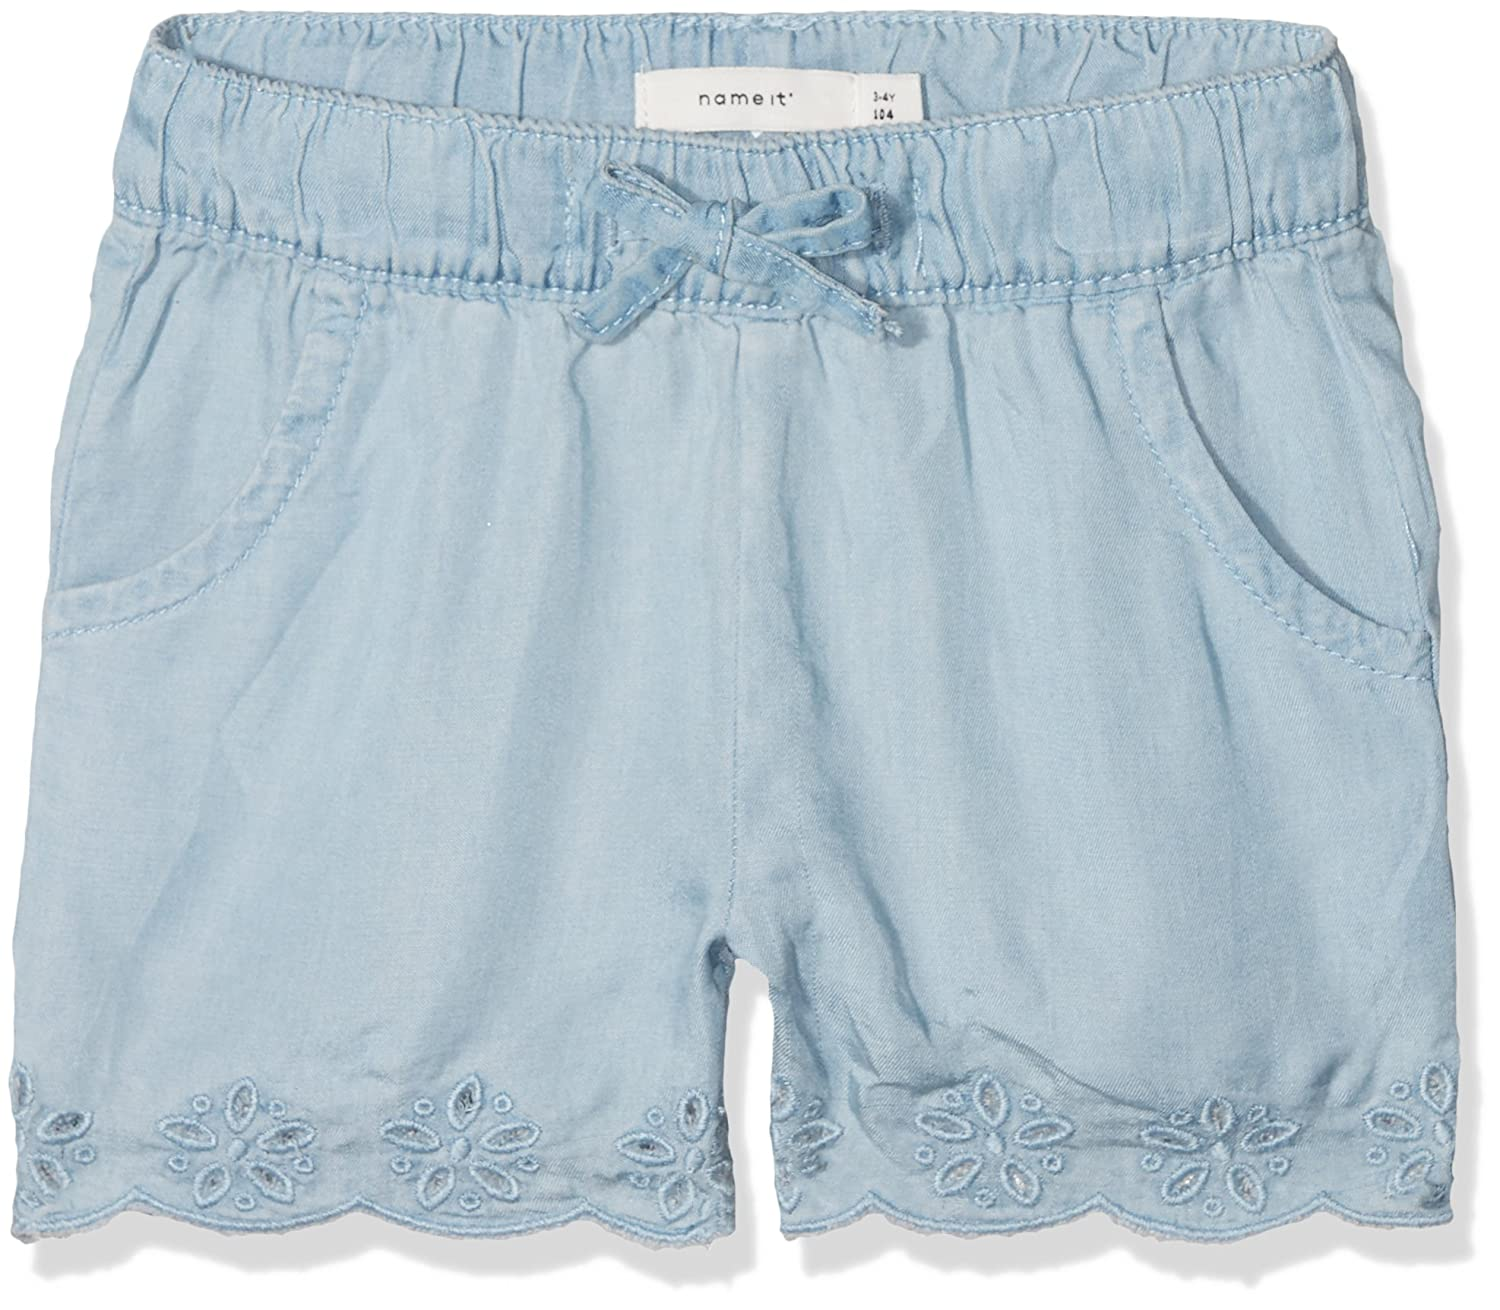 NAME IT Pantalones Cortos para Bebés Azul Light Blue Denim 104 13153310